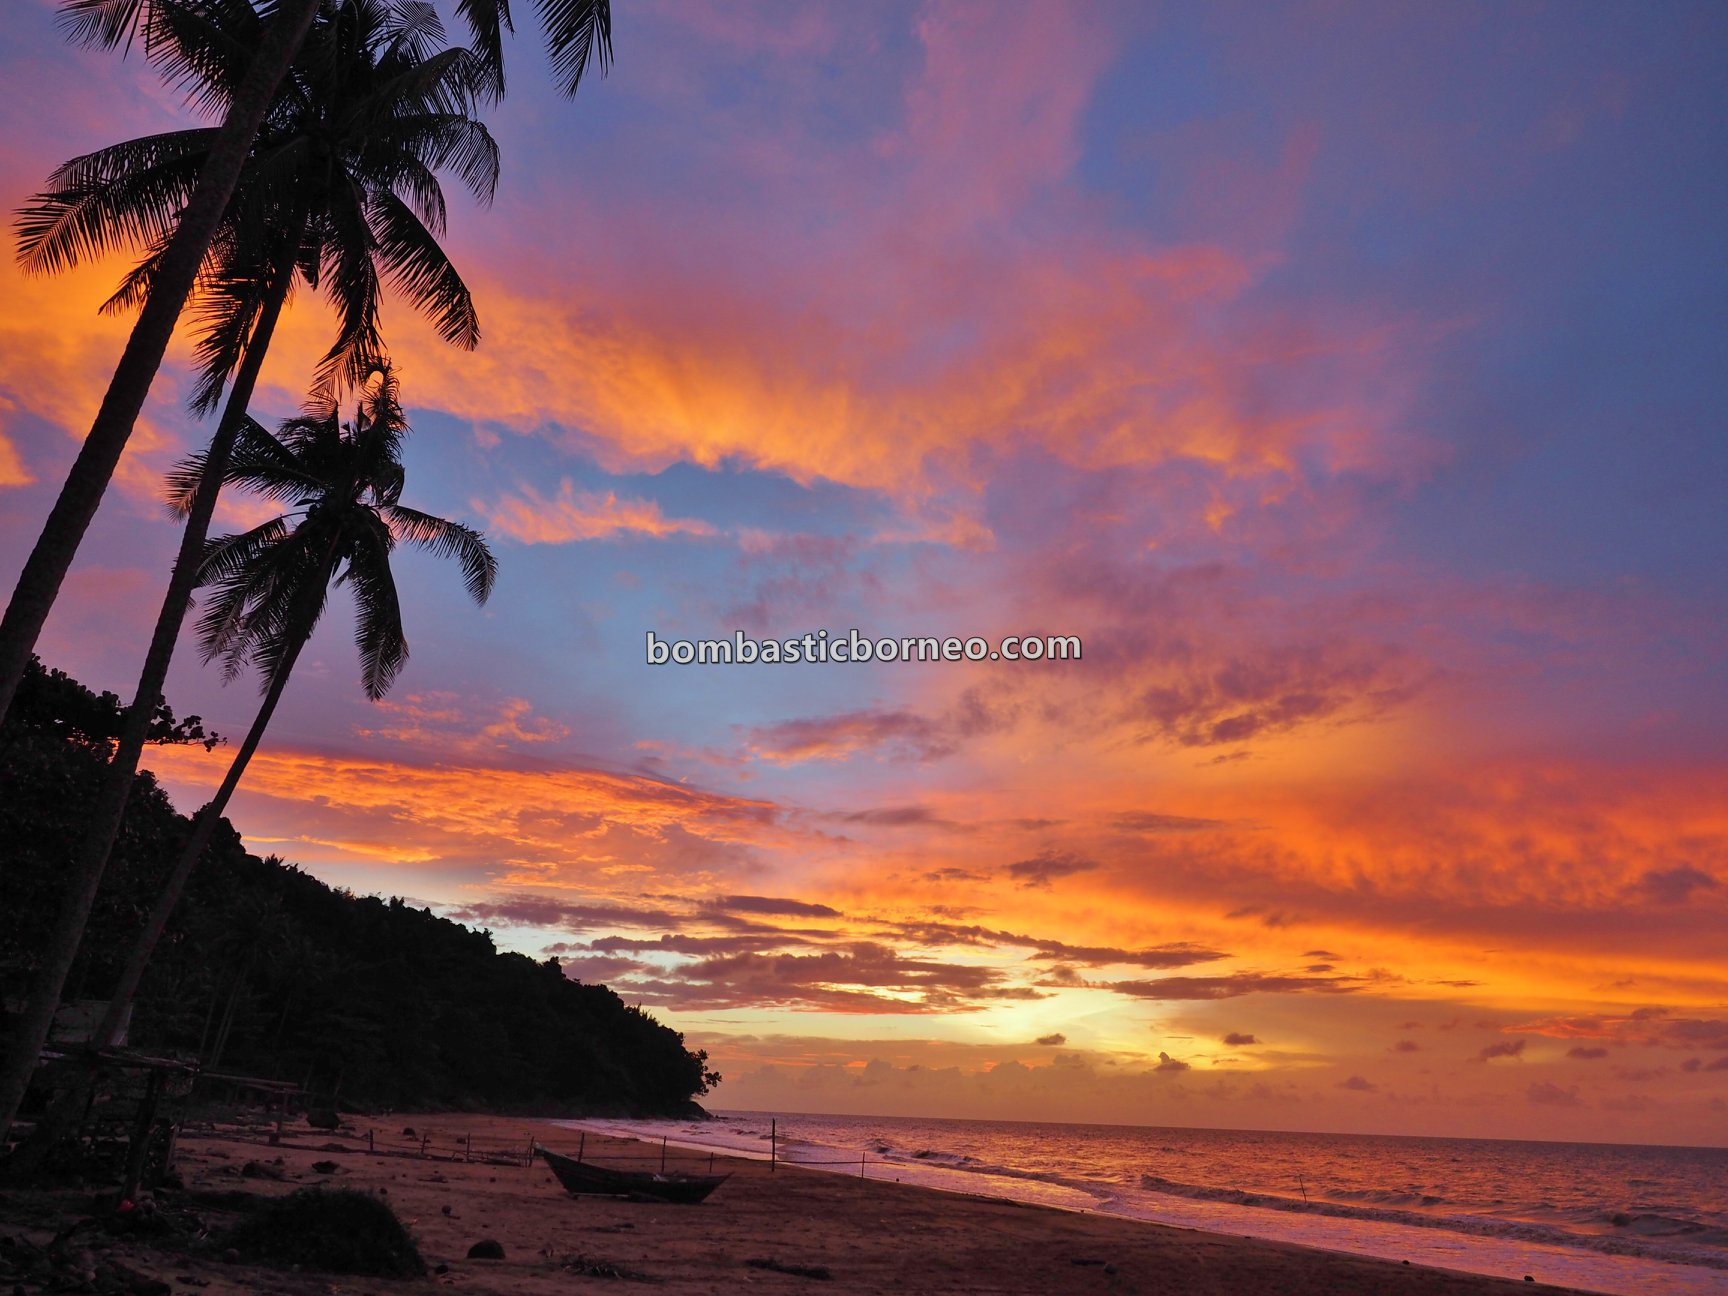 beach, adventure, nature, Malay village, Kampung Melayu, Jawai Selatan, tourist attraction, travel guide, backpackers, destination, Borneo, Trans Border, 探索婆罗洲游踪, 印尼西加里曼丹, 三发海滩